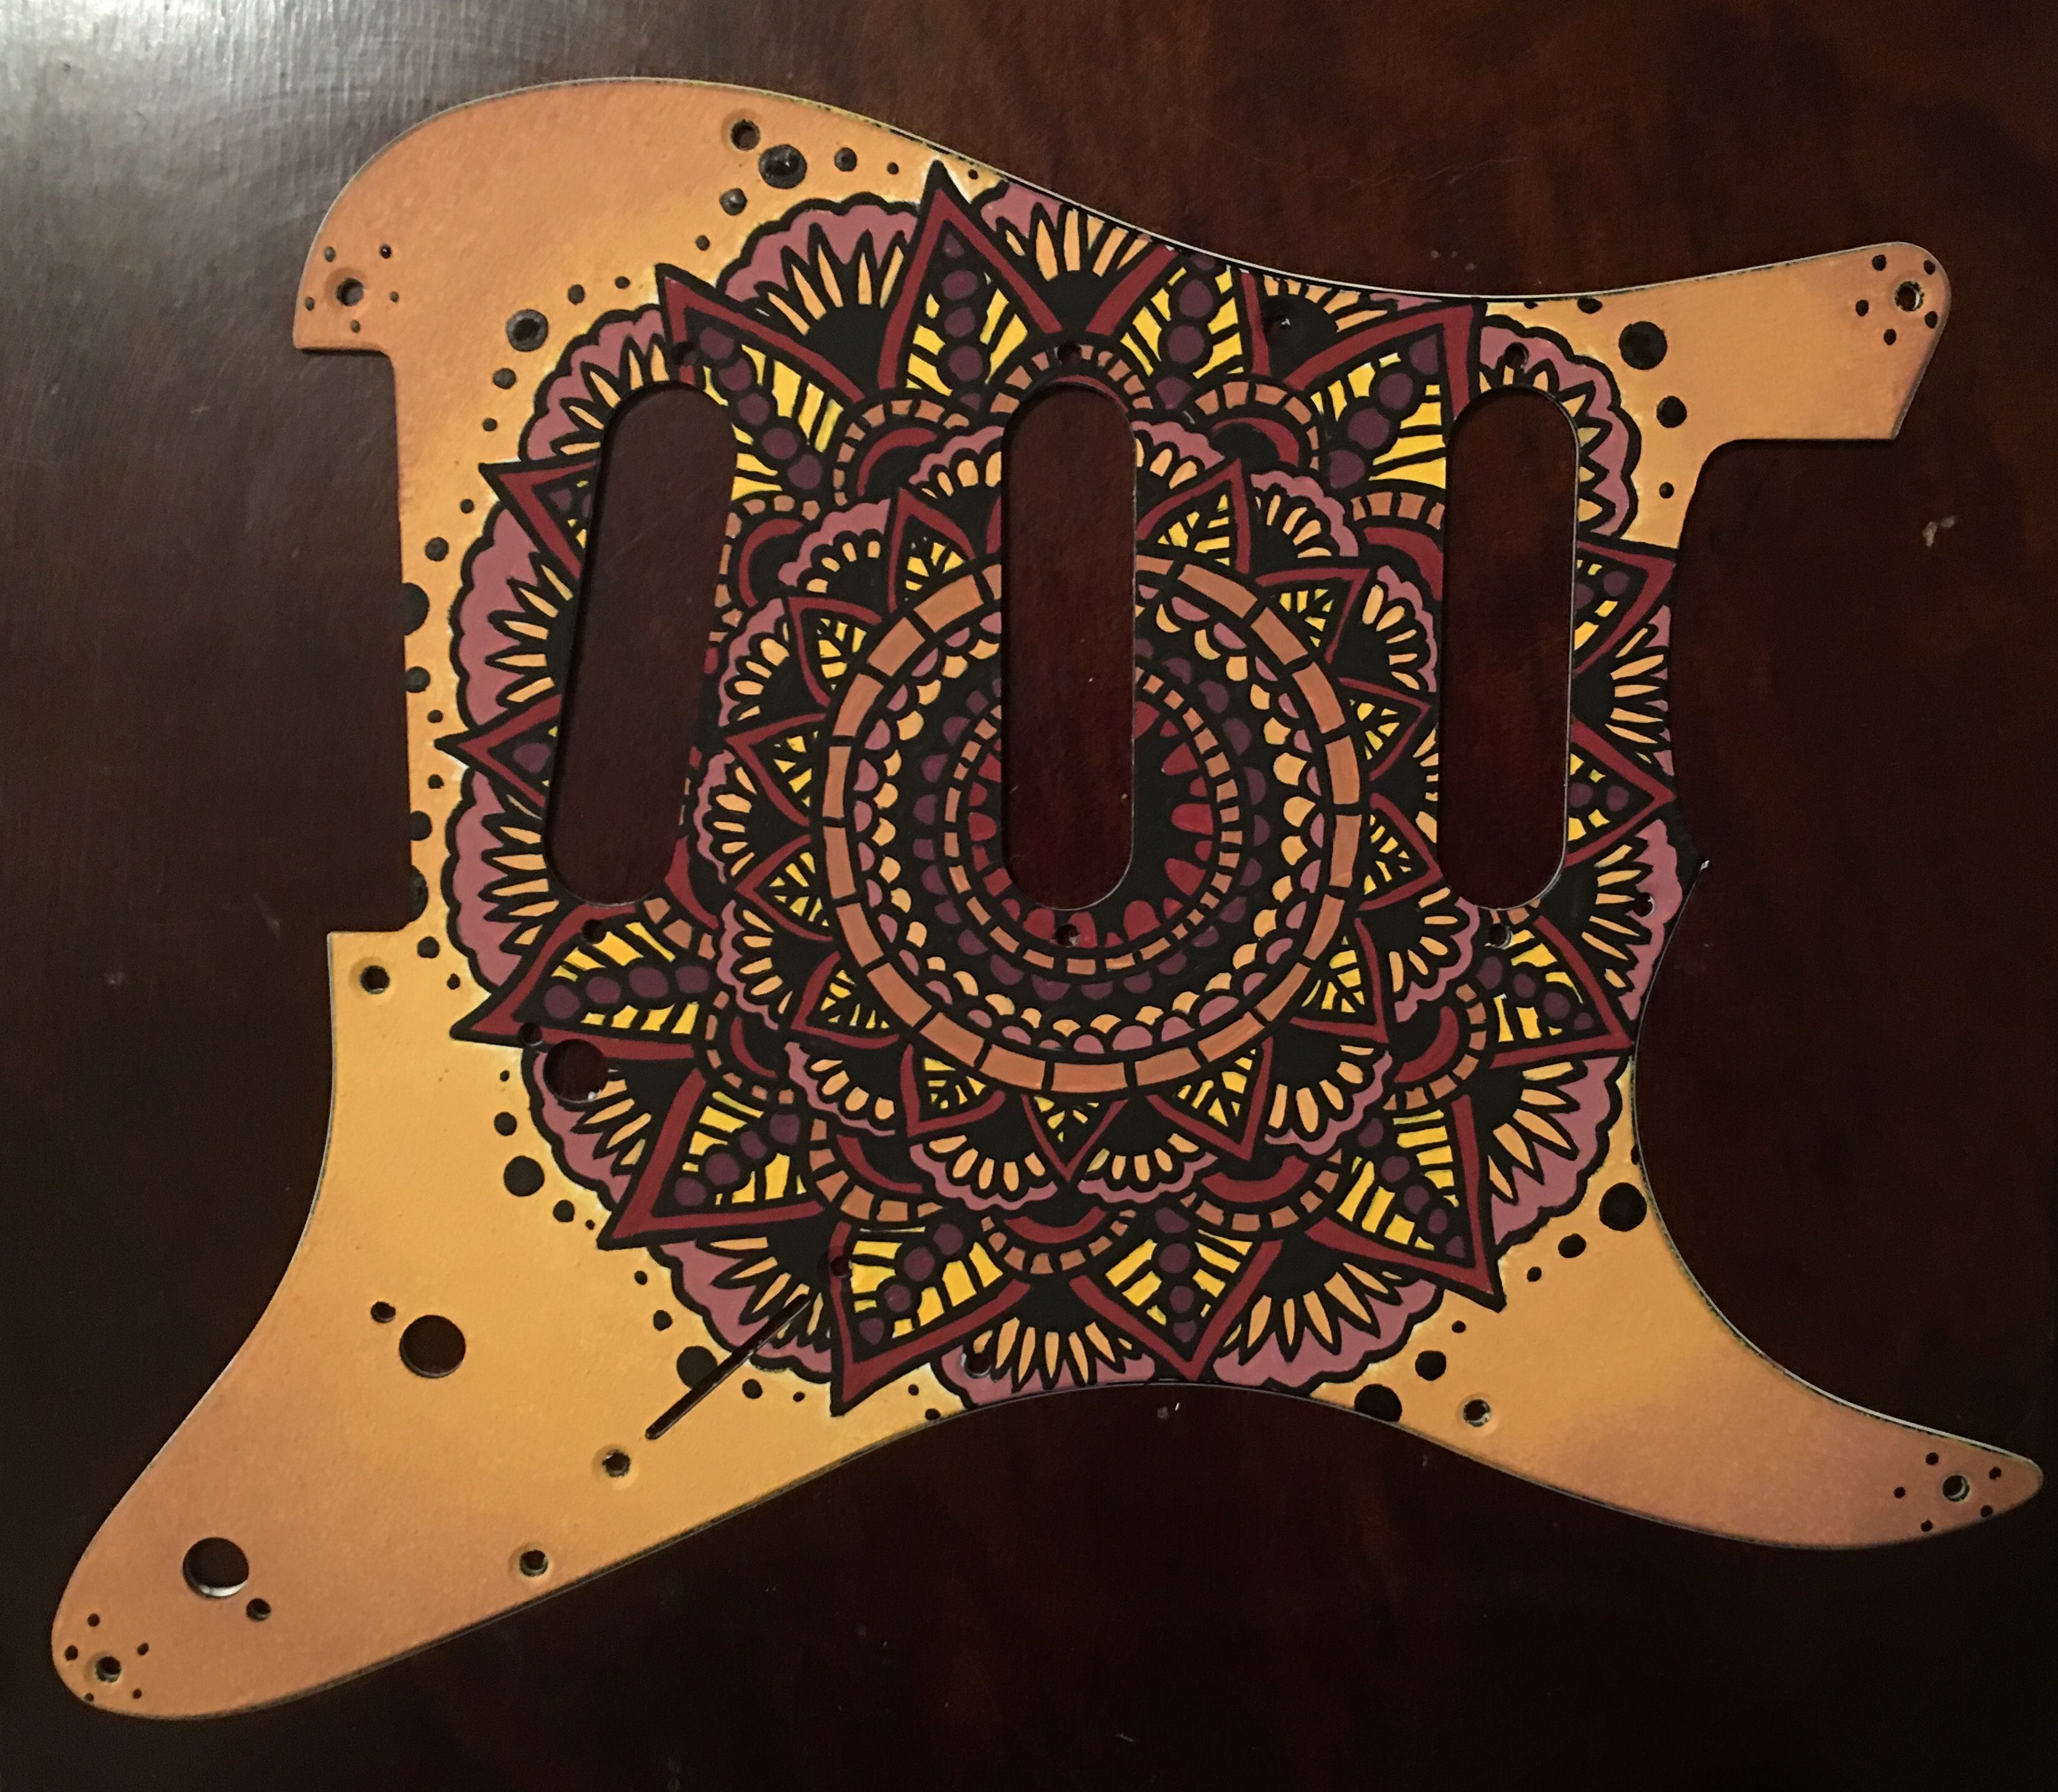 One of a kind custom hand painted strat pickguard none like it one of a kind custom hand painted strat pickguard none like it in the sciox Images